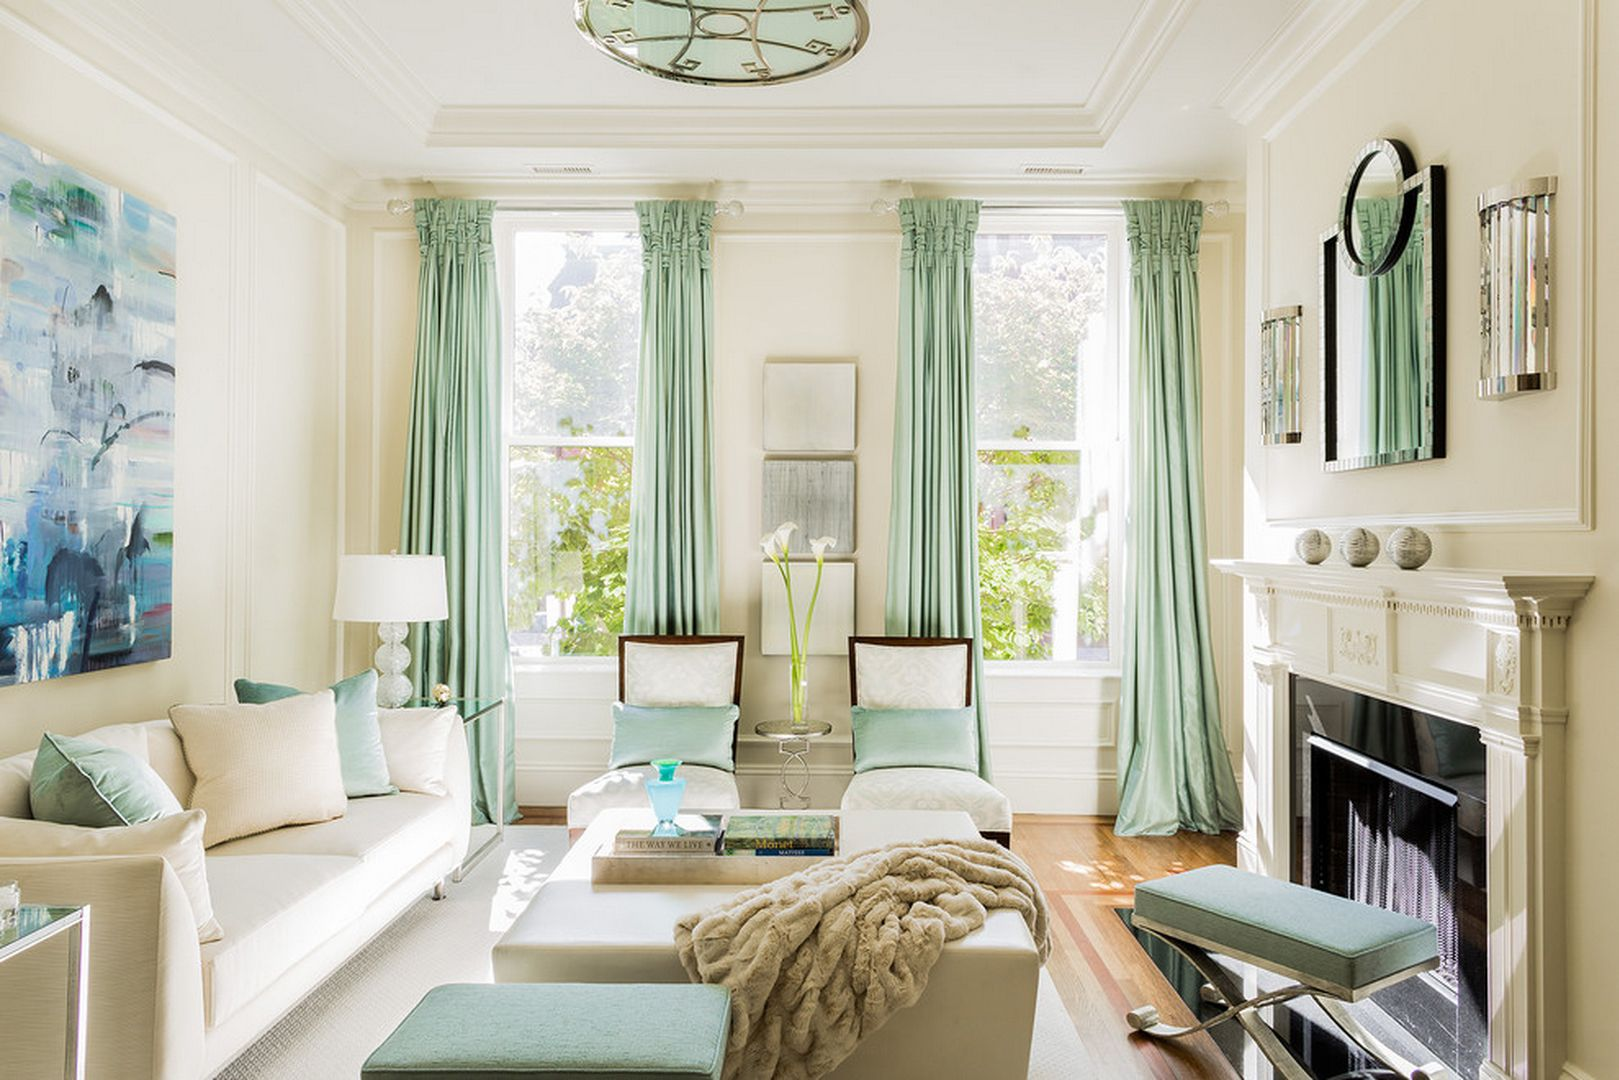 Stylish Mint Living Rooms for your Home Decor Mint Living Rooms Stylish Mint Living Rooms for your Home Decor Stylish Mint Living Rooms for your Home Decor2